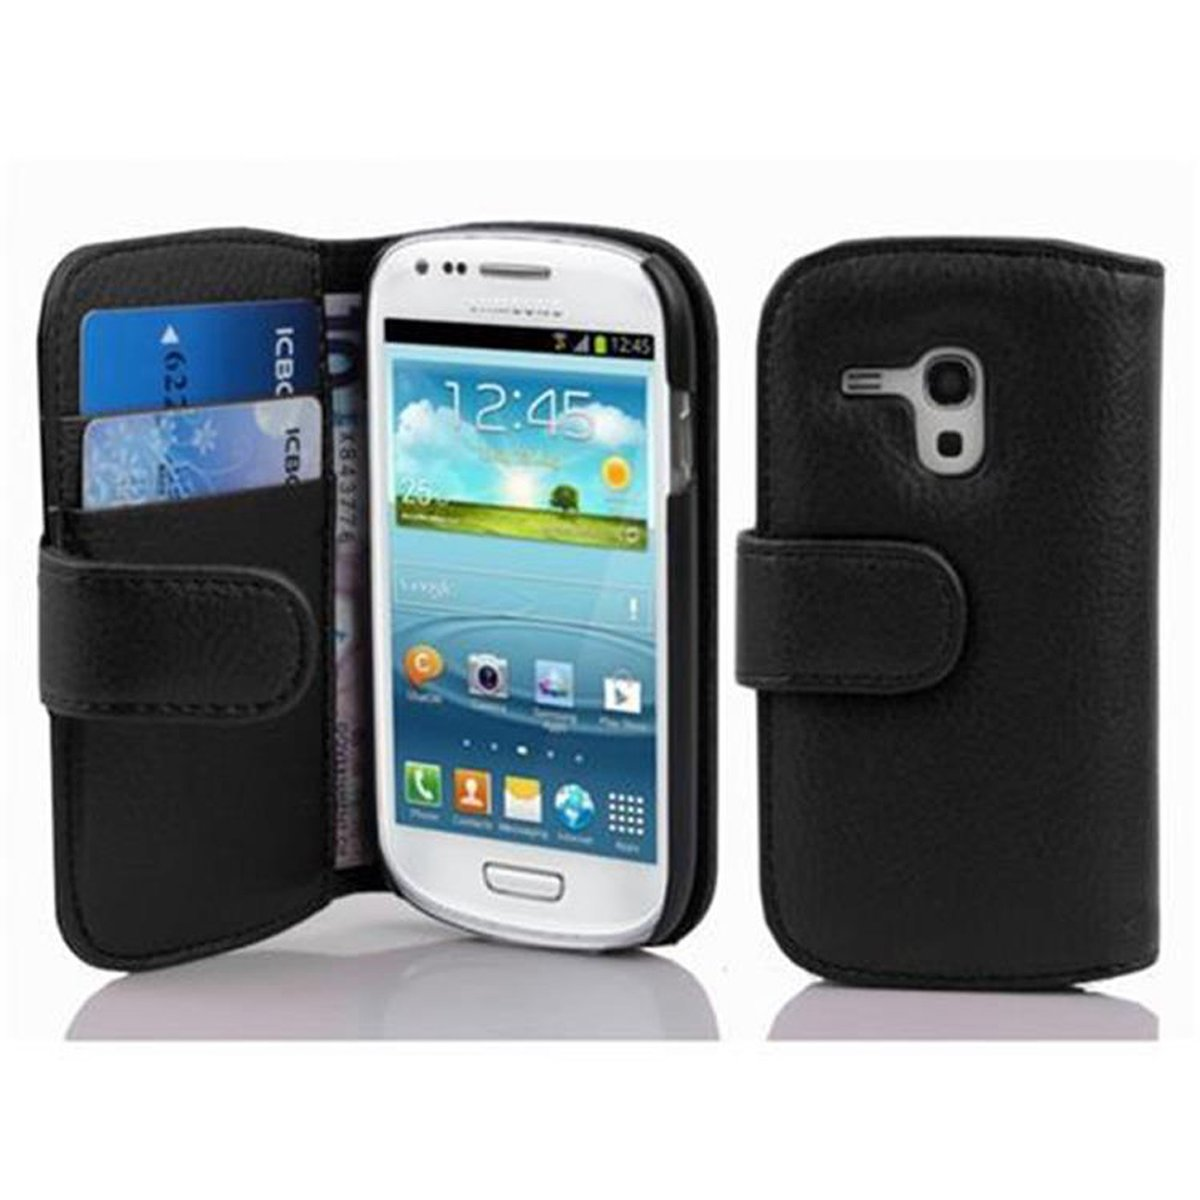 samsung galaxy s3 mini tasche mit kartenfach oxid schwarz. Black Bedroom Furniture Sets. Home Design Ideas